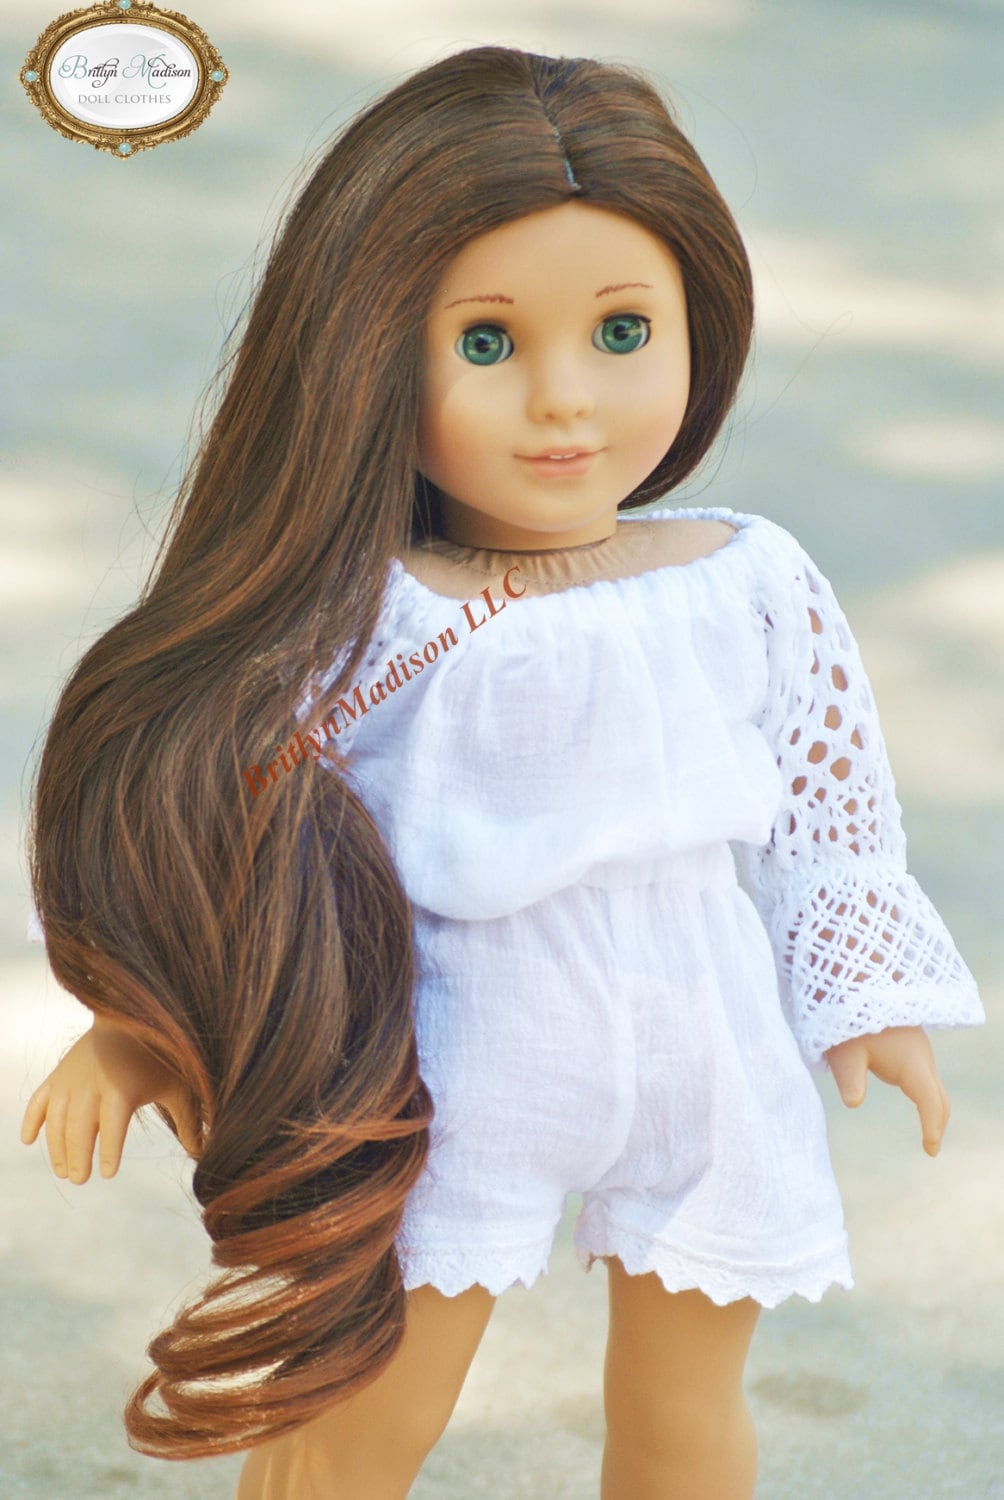 Premium Doll Wig Size 10 11 Fits 18 Inch Dolls Like